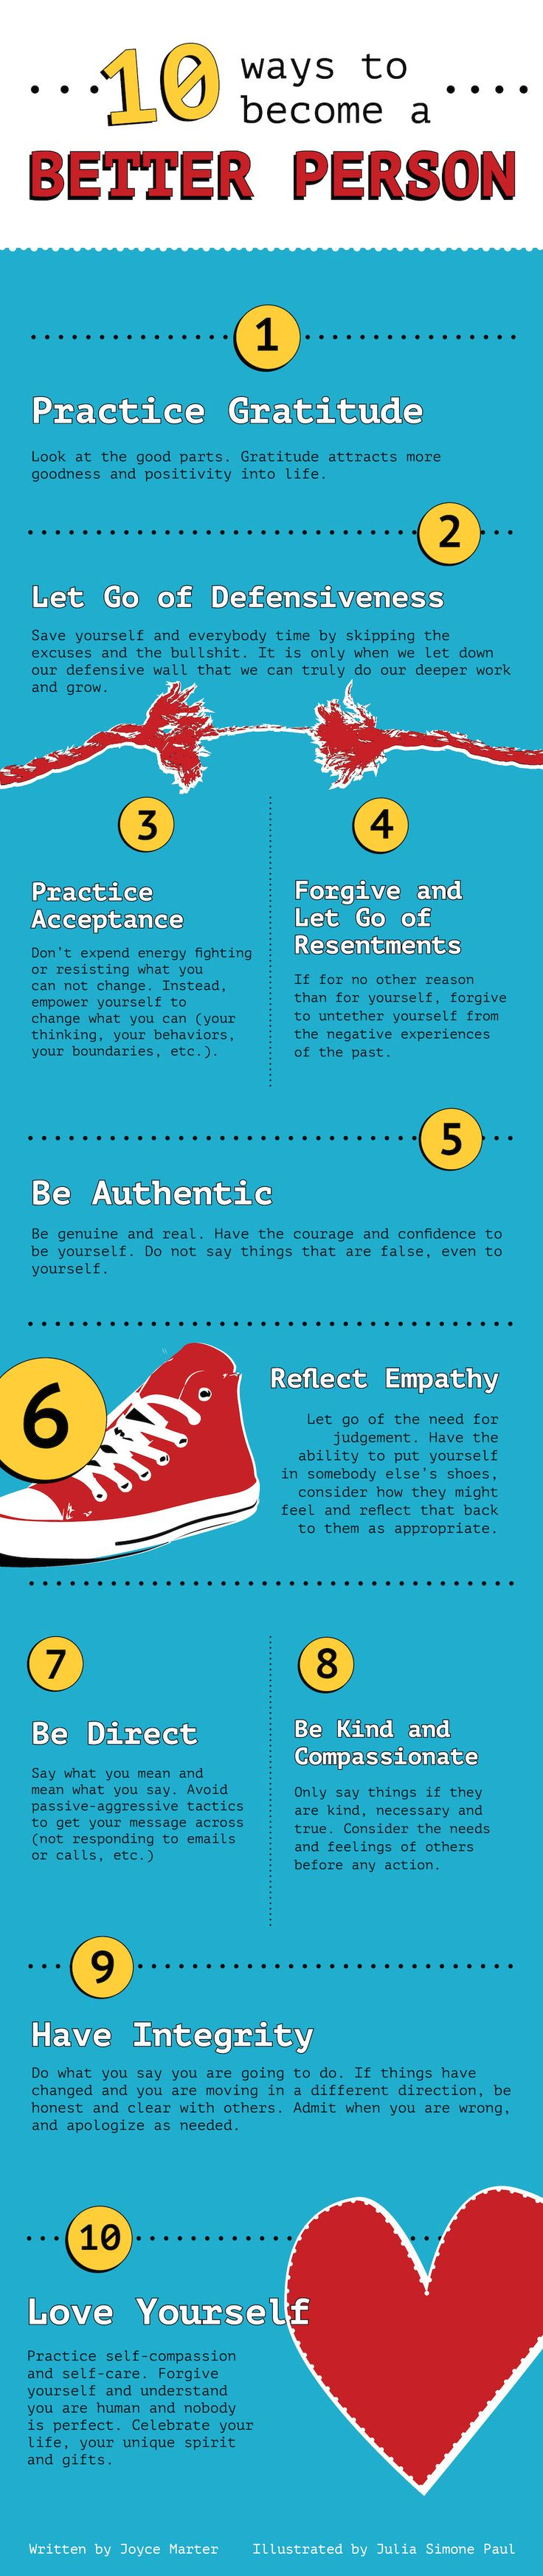 58 best Advices images on Pinterest